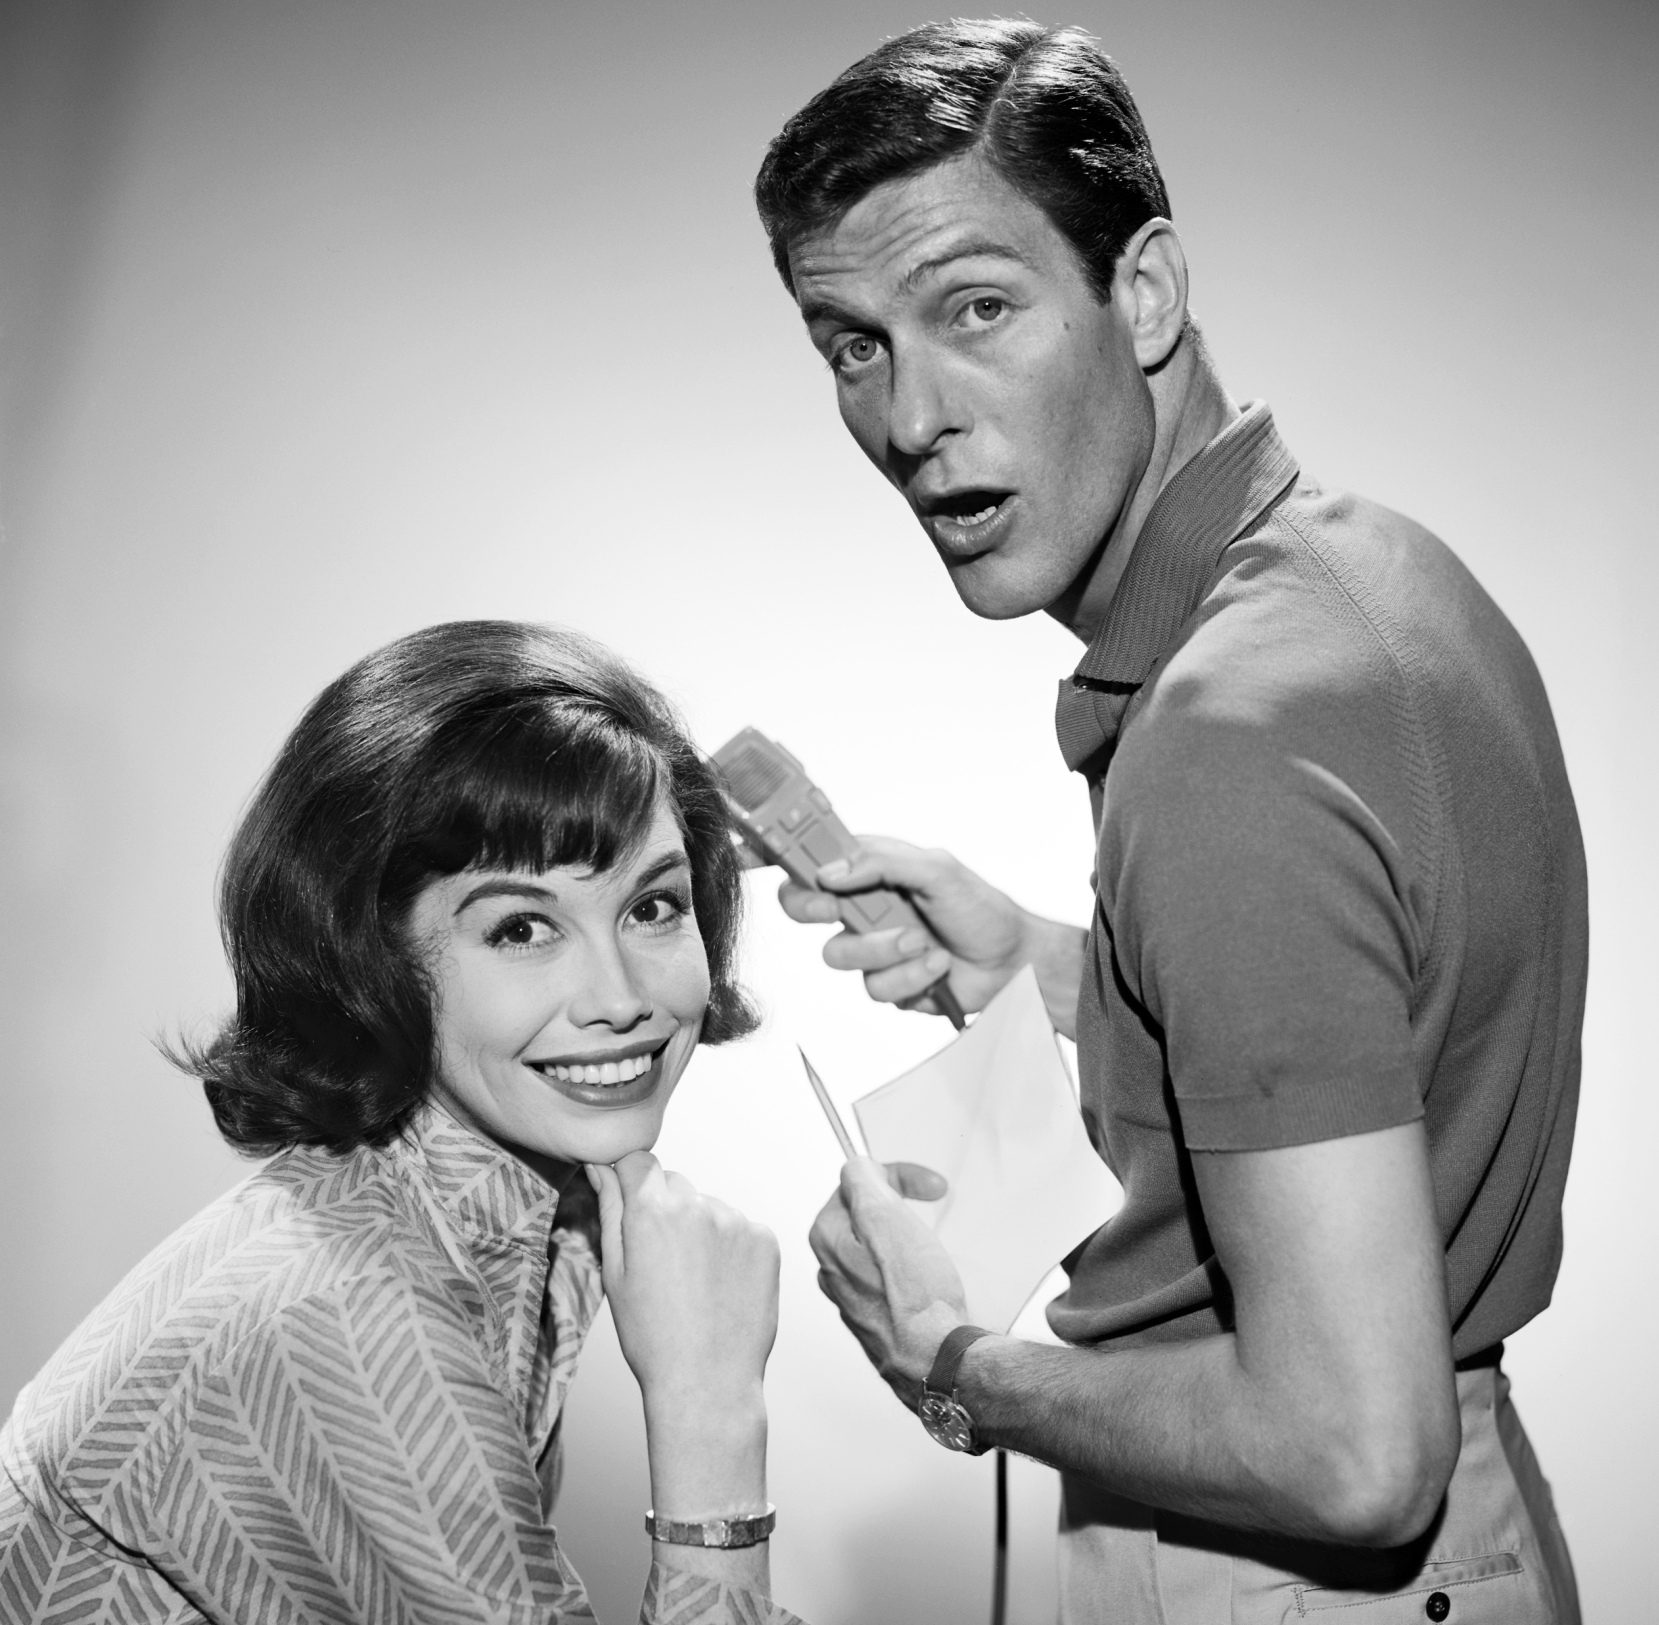 1 260 e1608212768771 20 Things You Never Knew About Dick Van Dyke